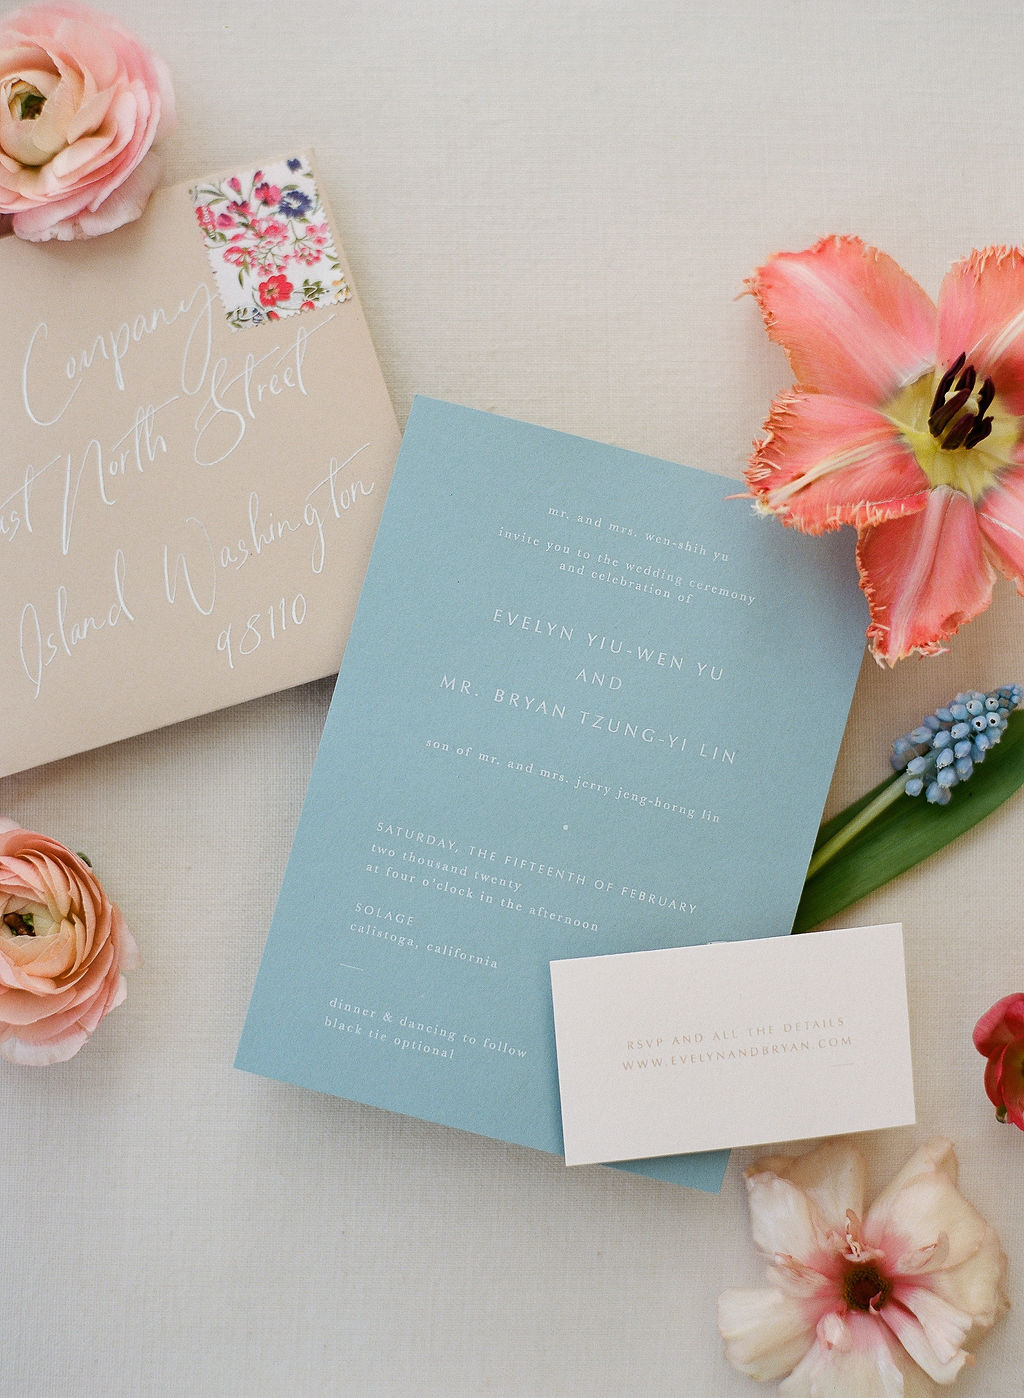 blue, tan and pink wedding invitation suite with flowers